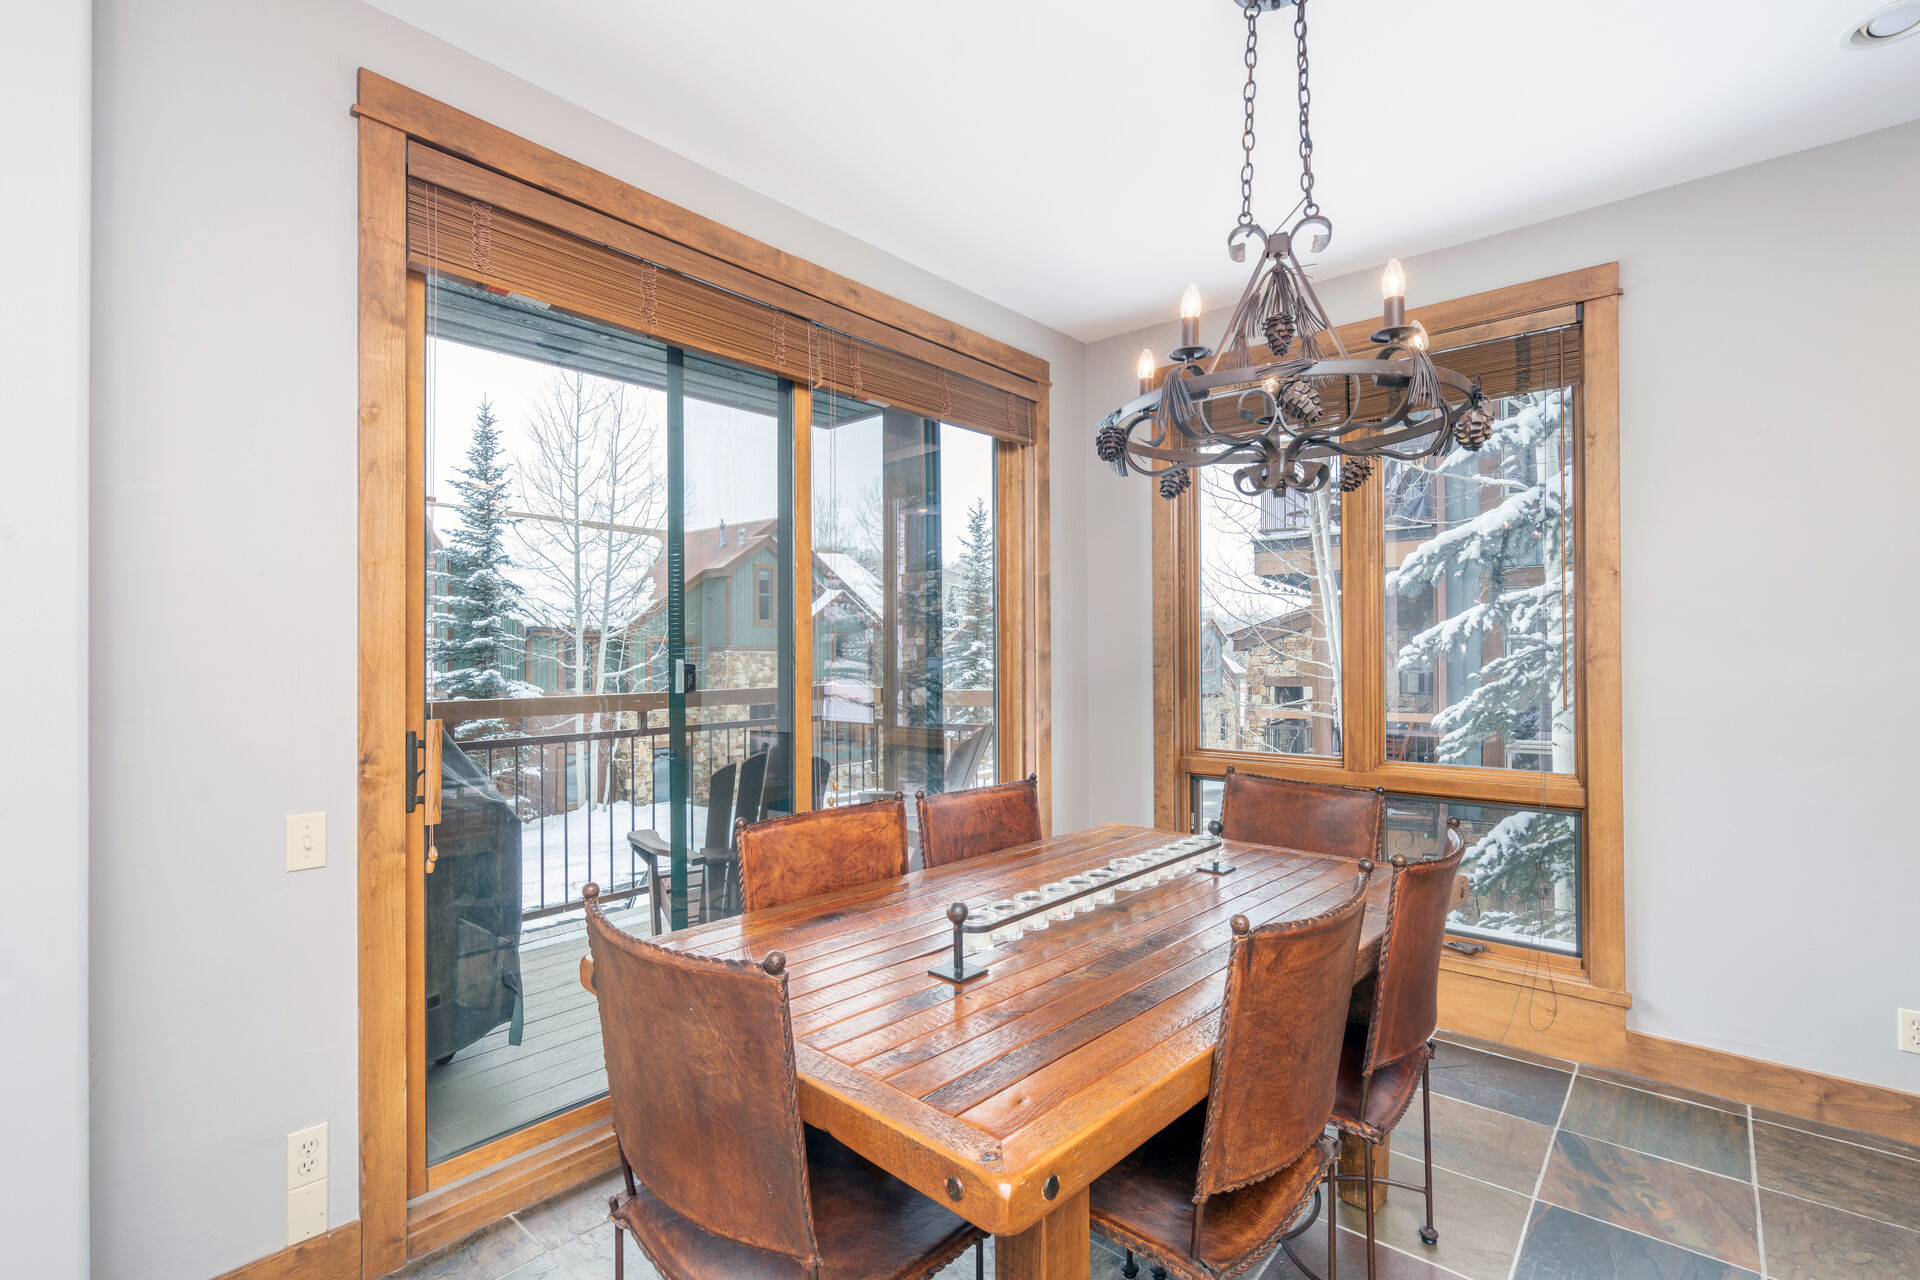 Dining room with wood furniture and snowy views